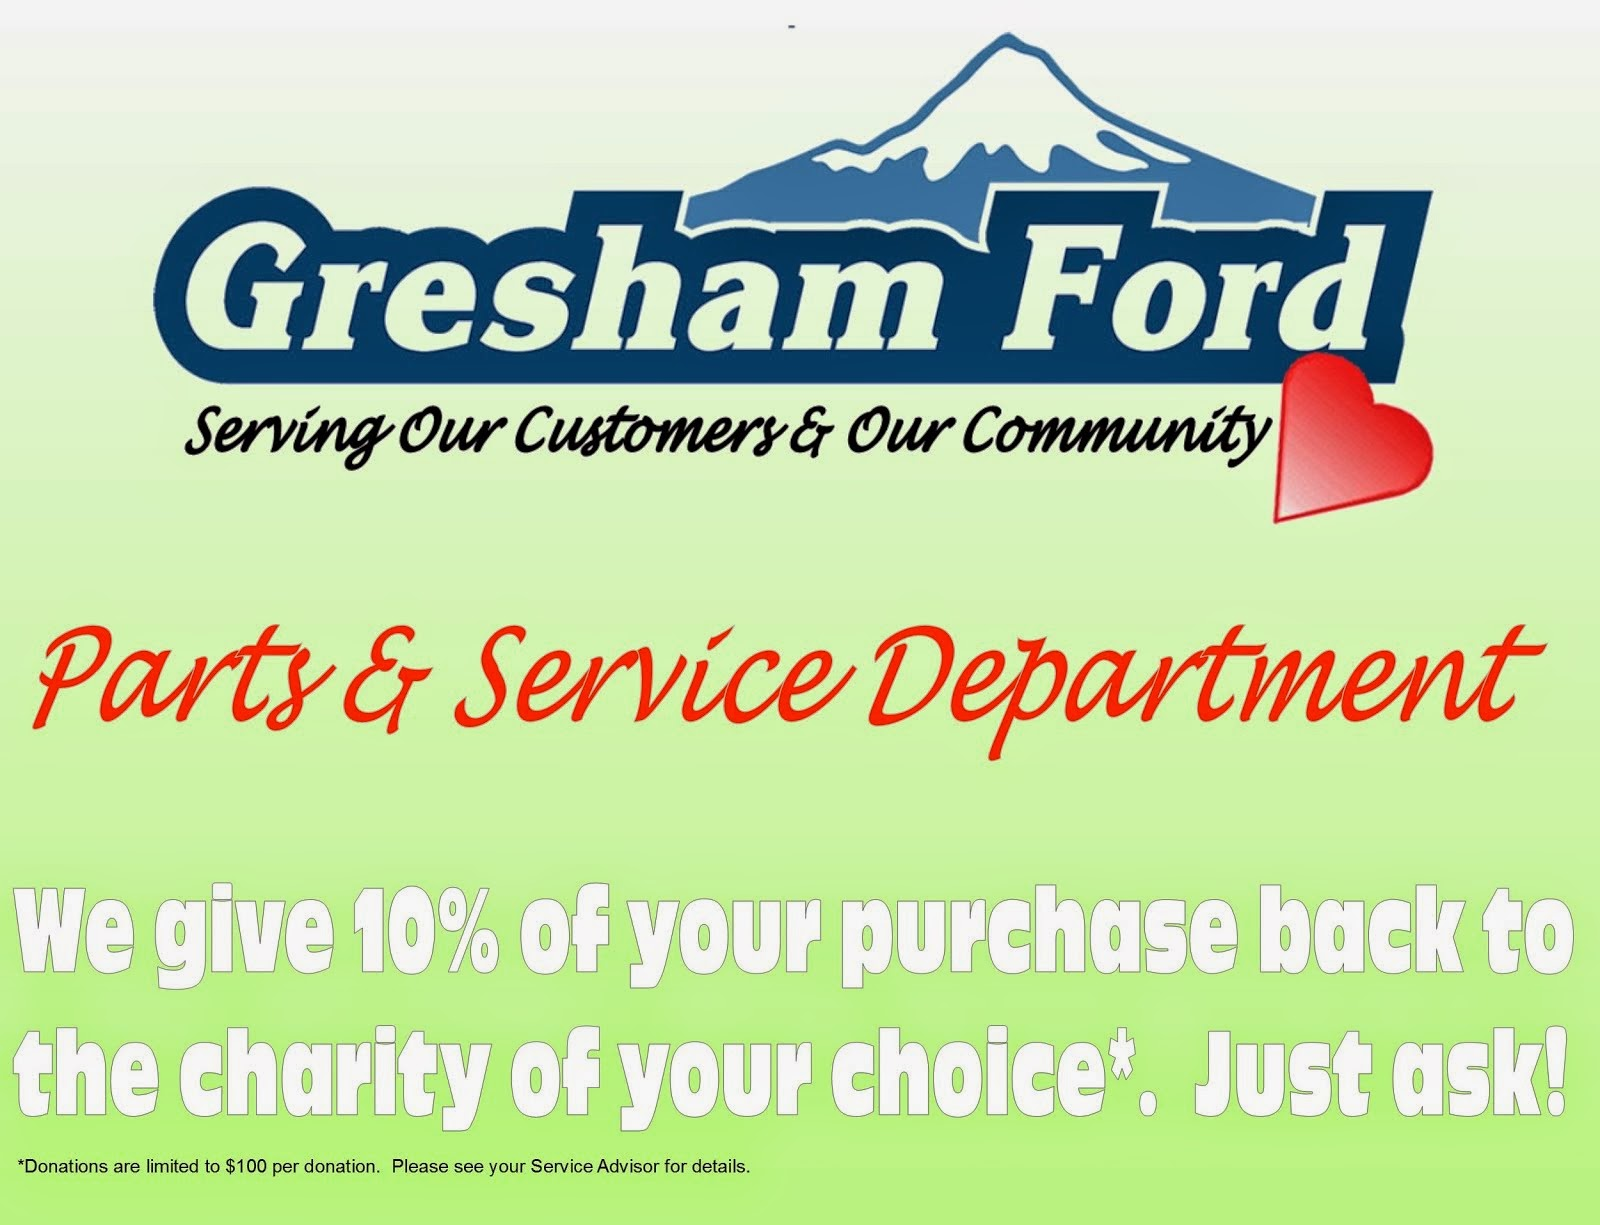 Gresham Ford Contributes to the Community